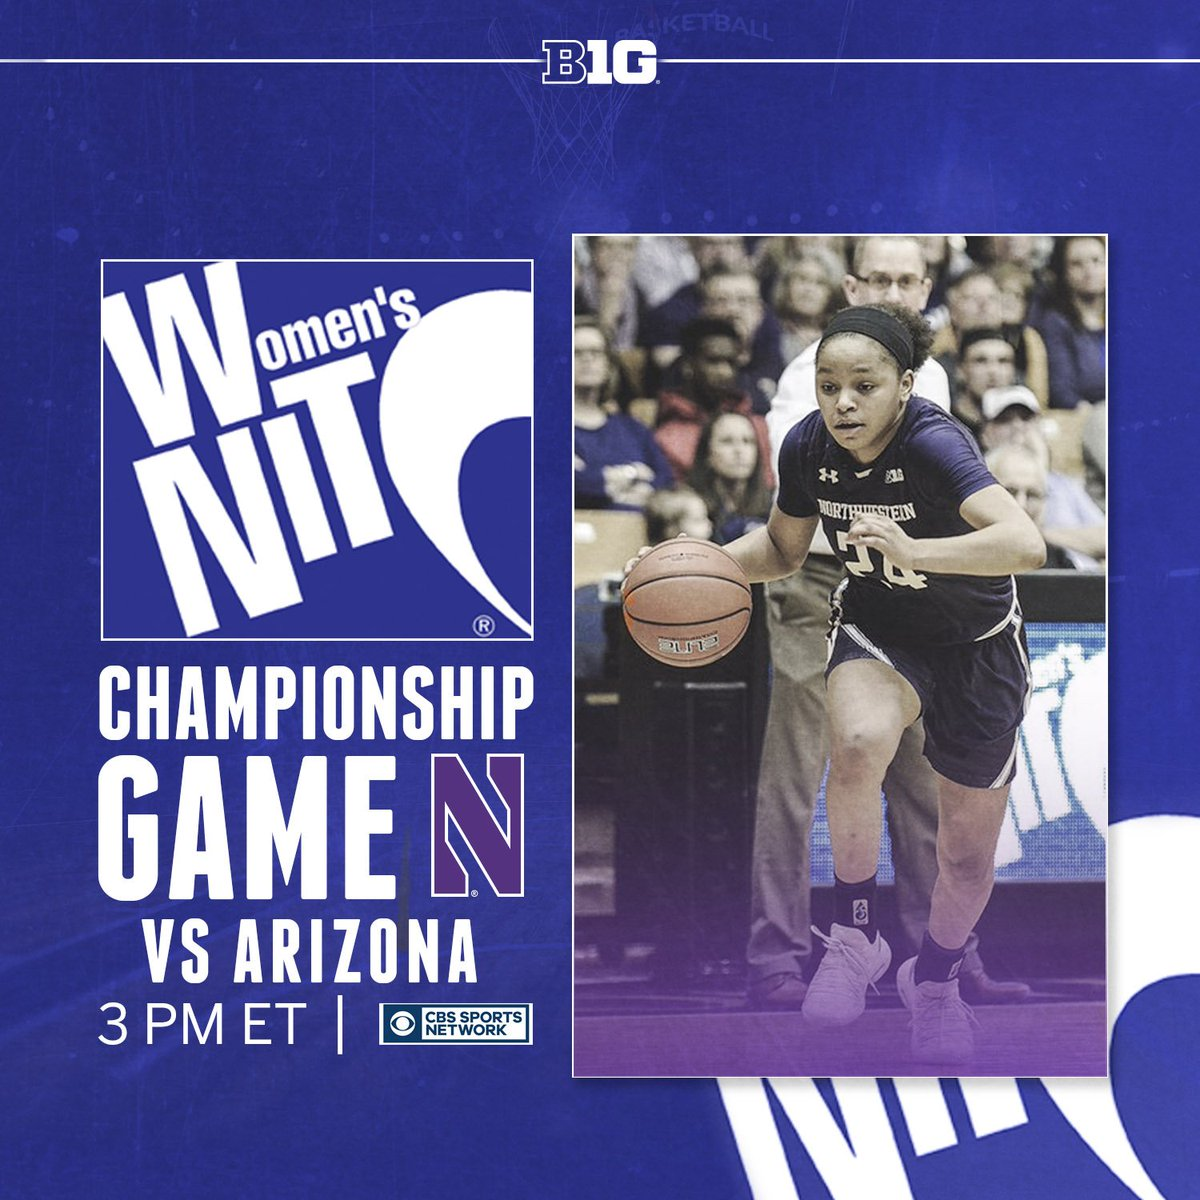 The 2019 @WomensNIT Championship game is underway as @nuwbball takes on Arizona. Tune into @CBSSportsNet to catch all the action.  #B1GWBBall x #WNIT